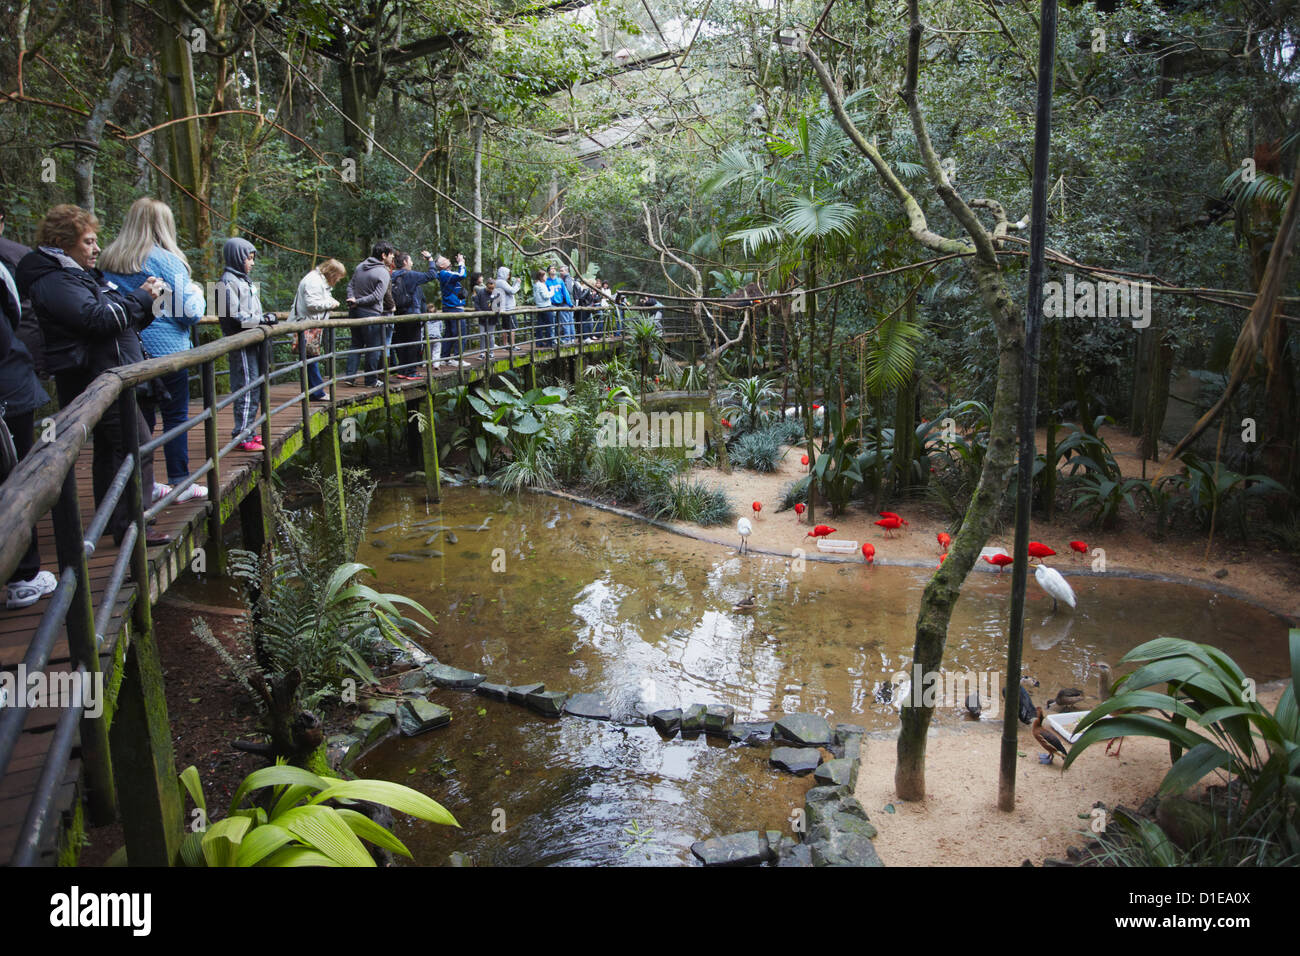 People inside walk-in enclosure at Parque das Aves (Bird Park), Iguacu, Parana, Brazil, South America - Stock Image